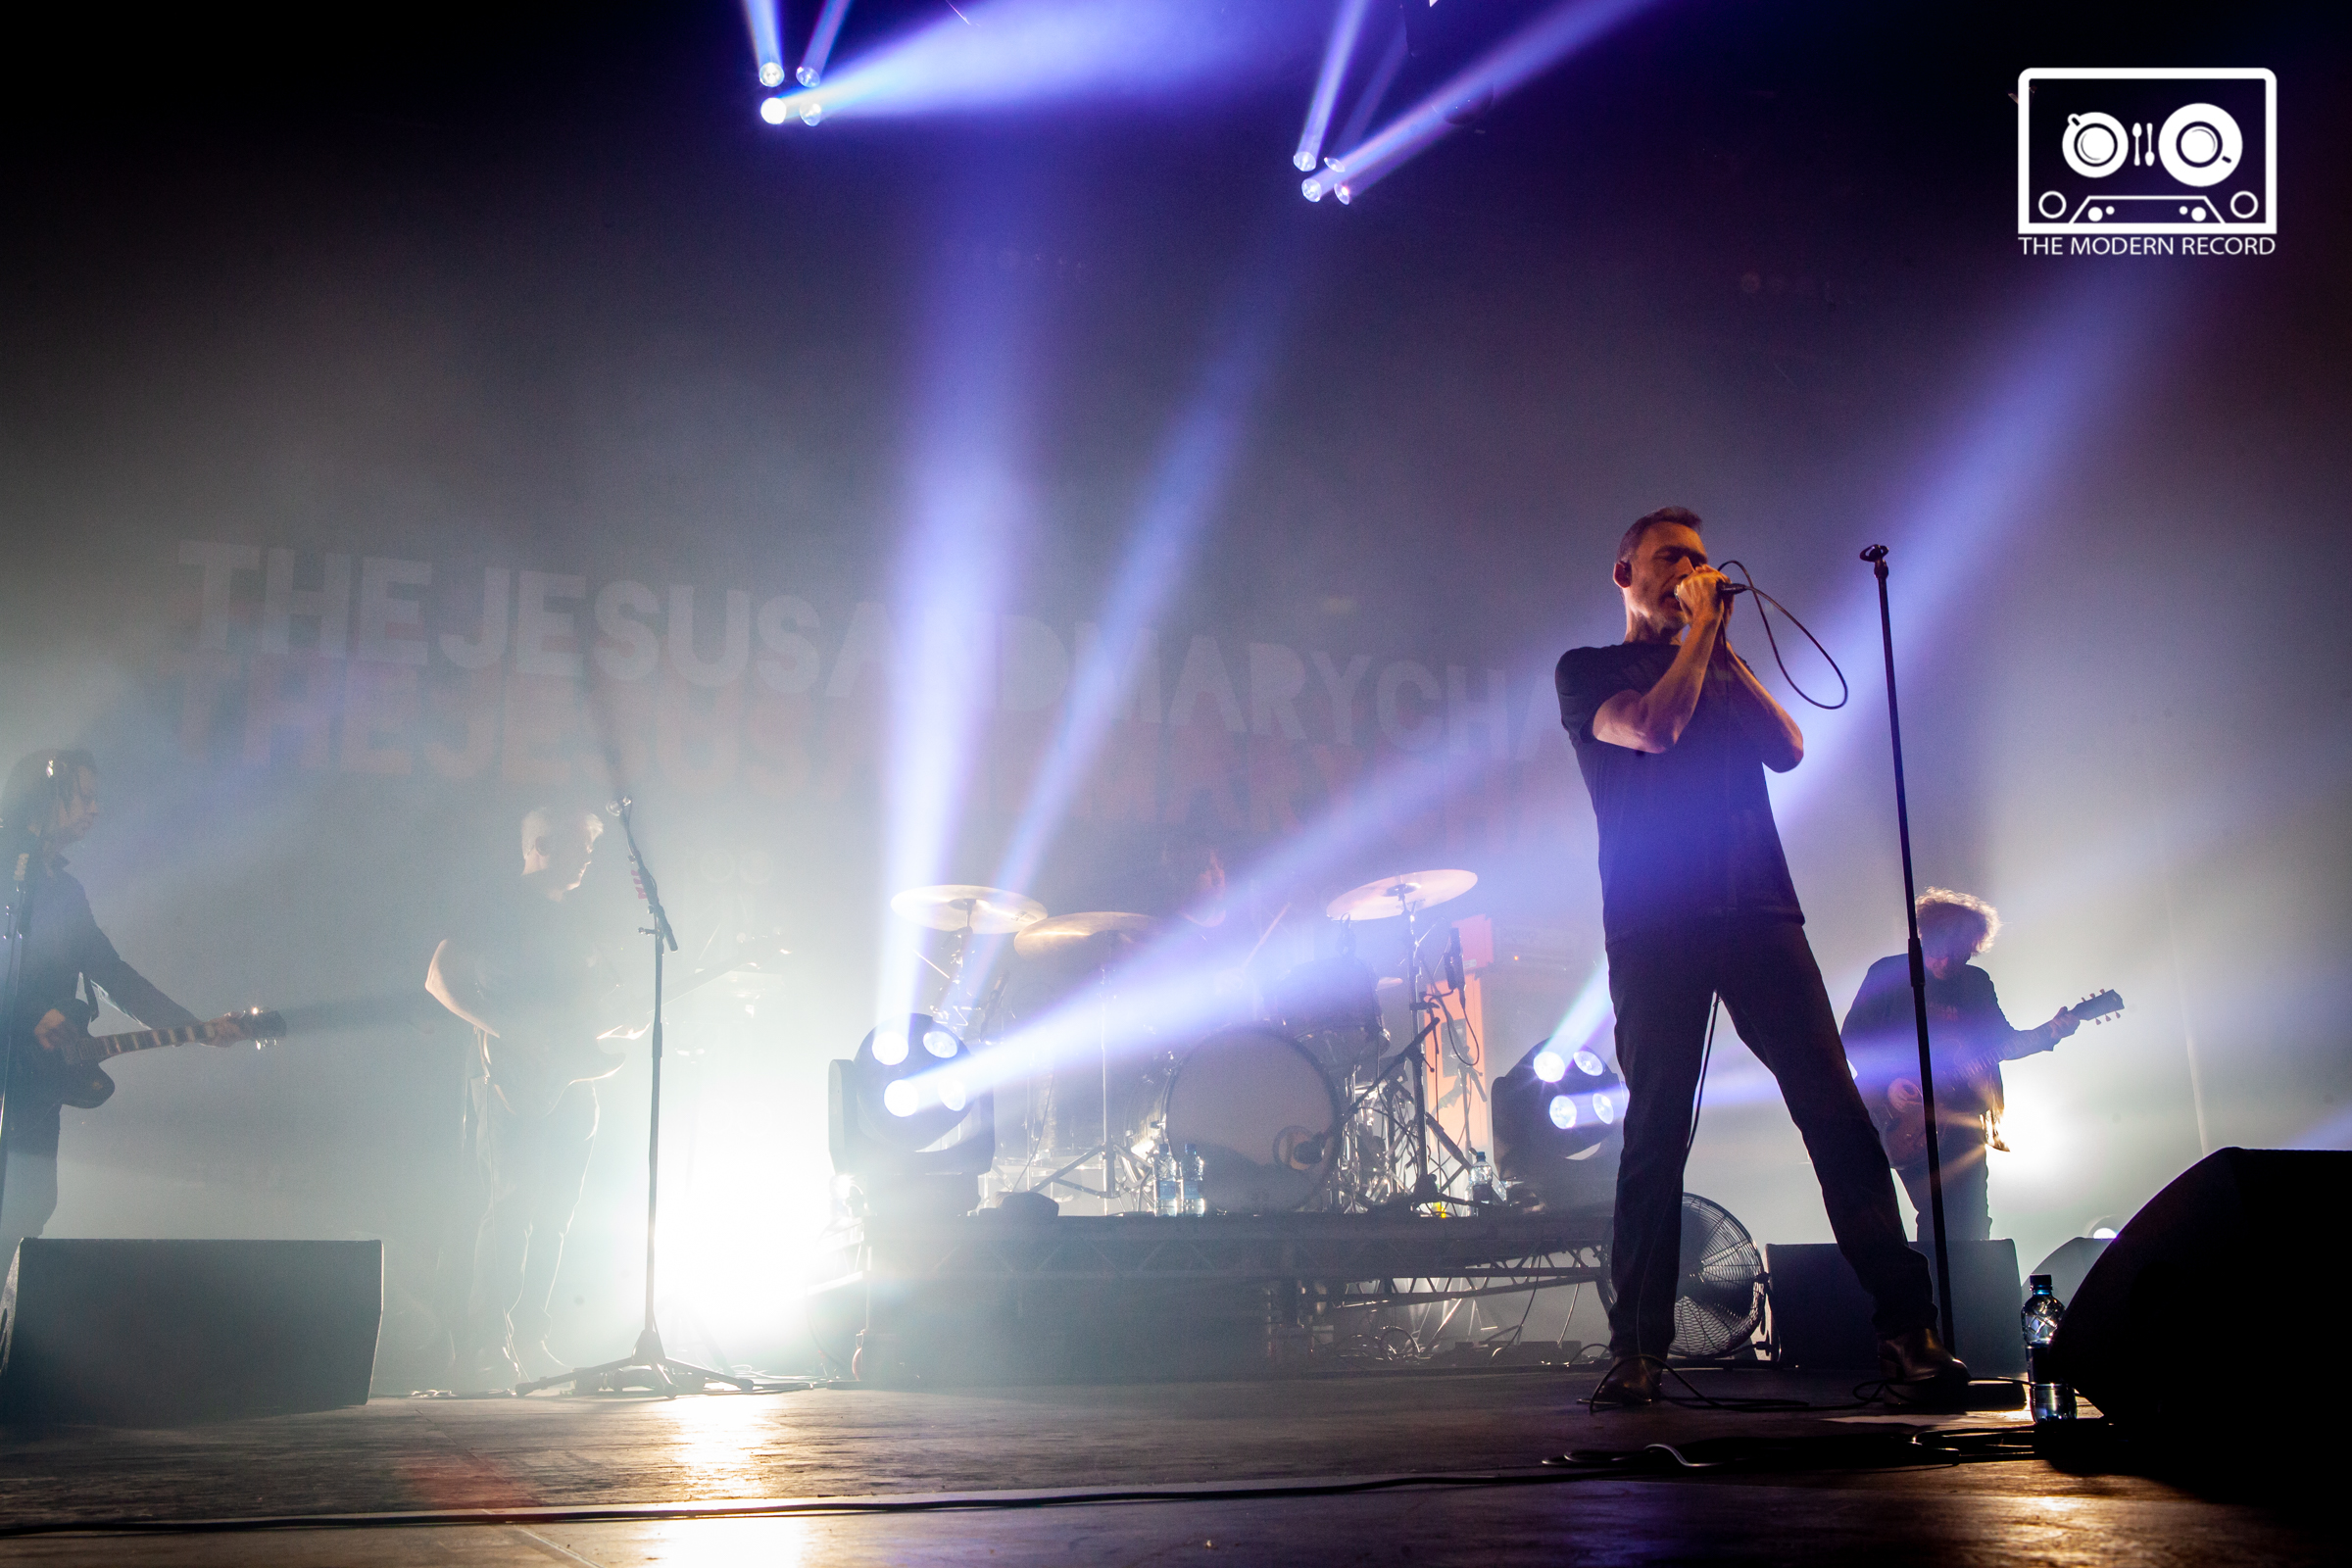 THE JESUS & THE MARY CHAIN PERFORMING AT LEITH THEATRE AS PART OF EDINBURGH'S INTERNATIONAL FESTIVAL - 14.08.2018  PICTURE BY: